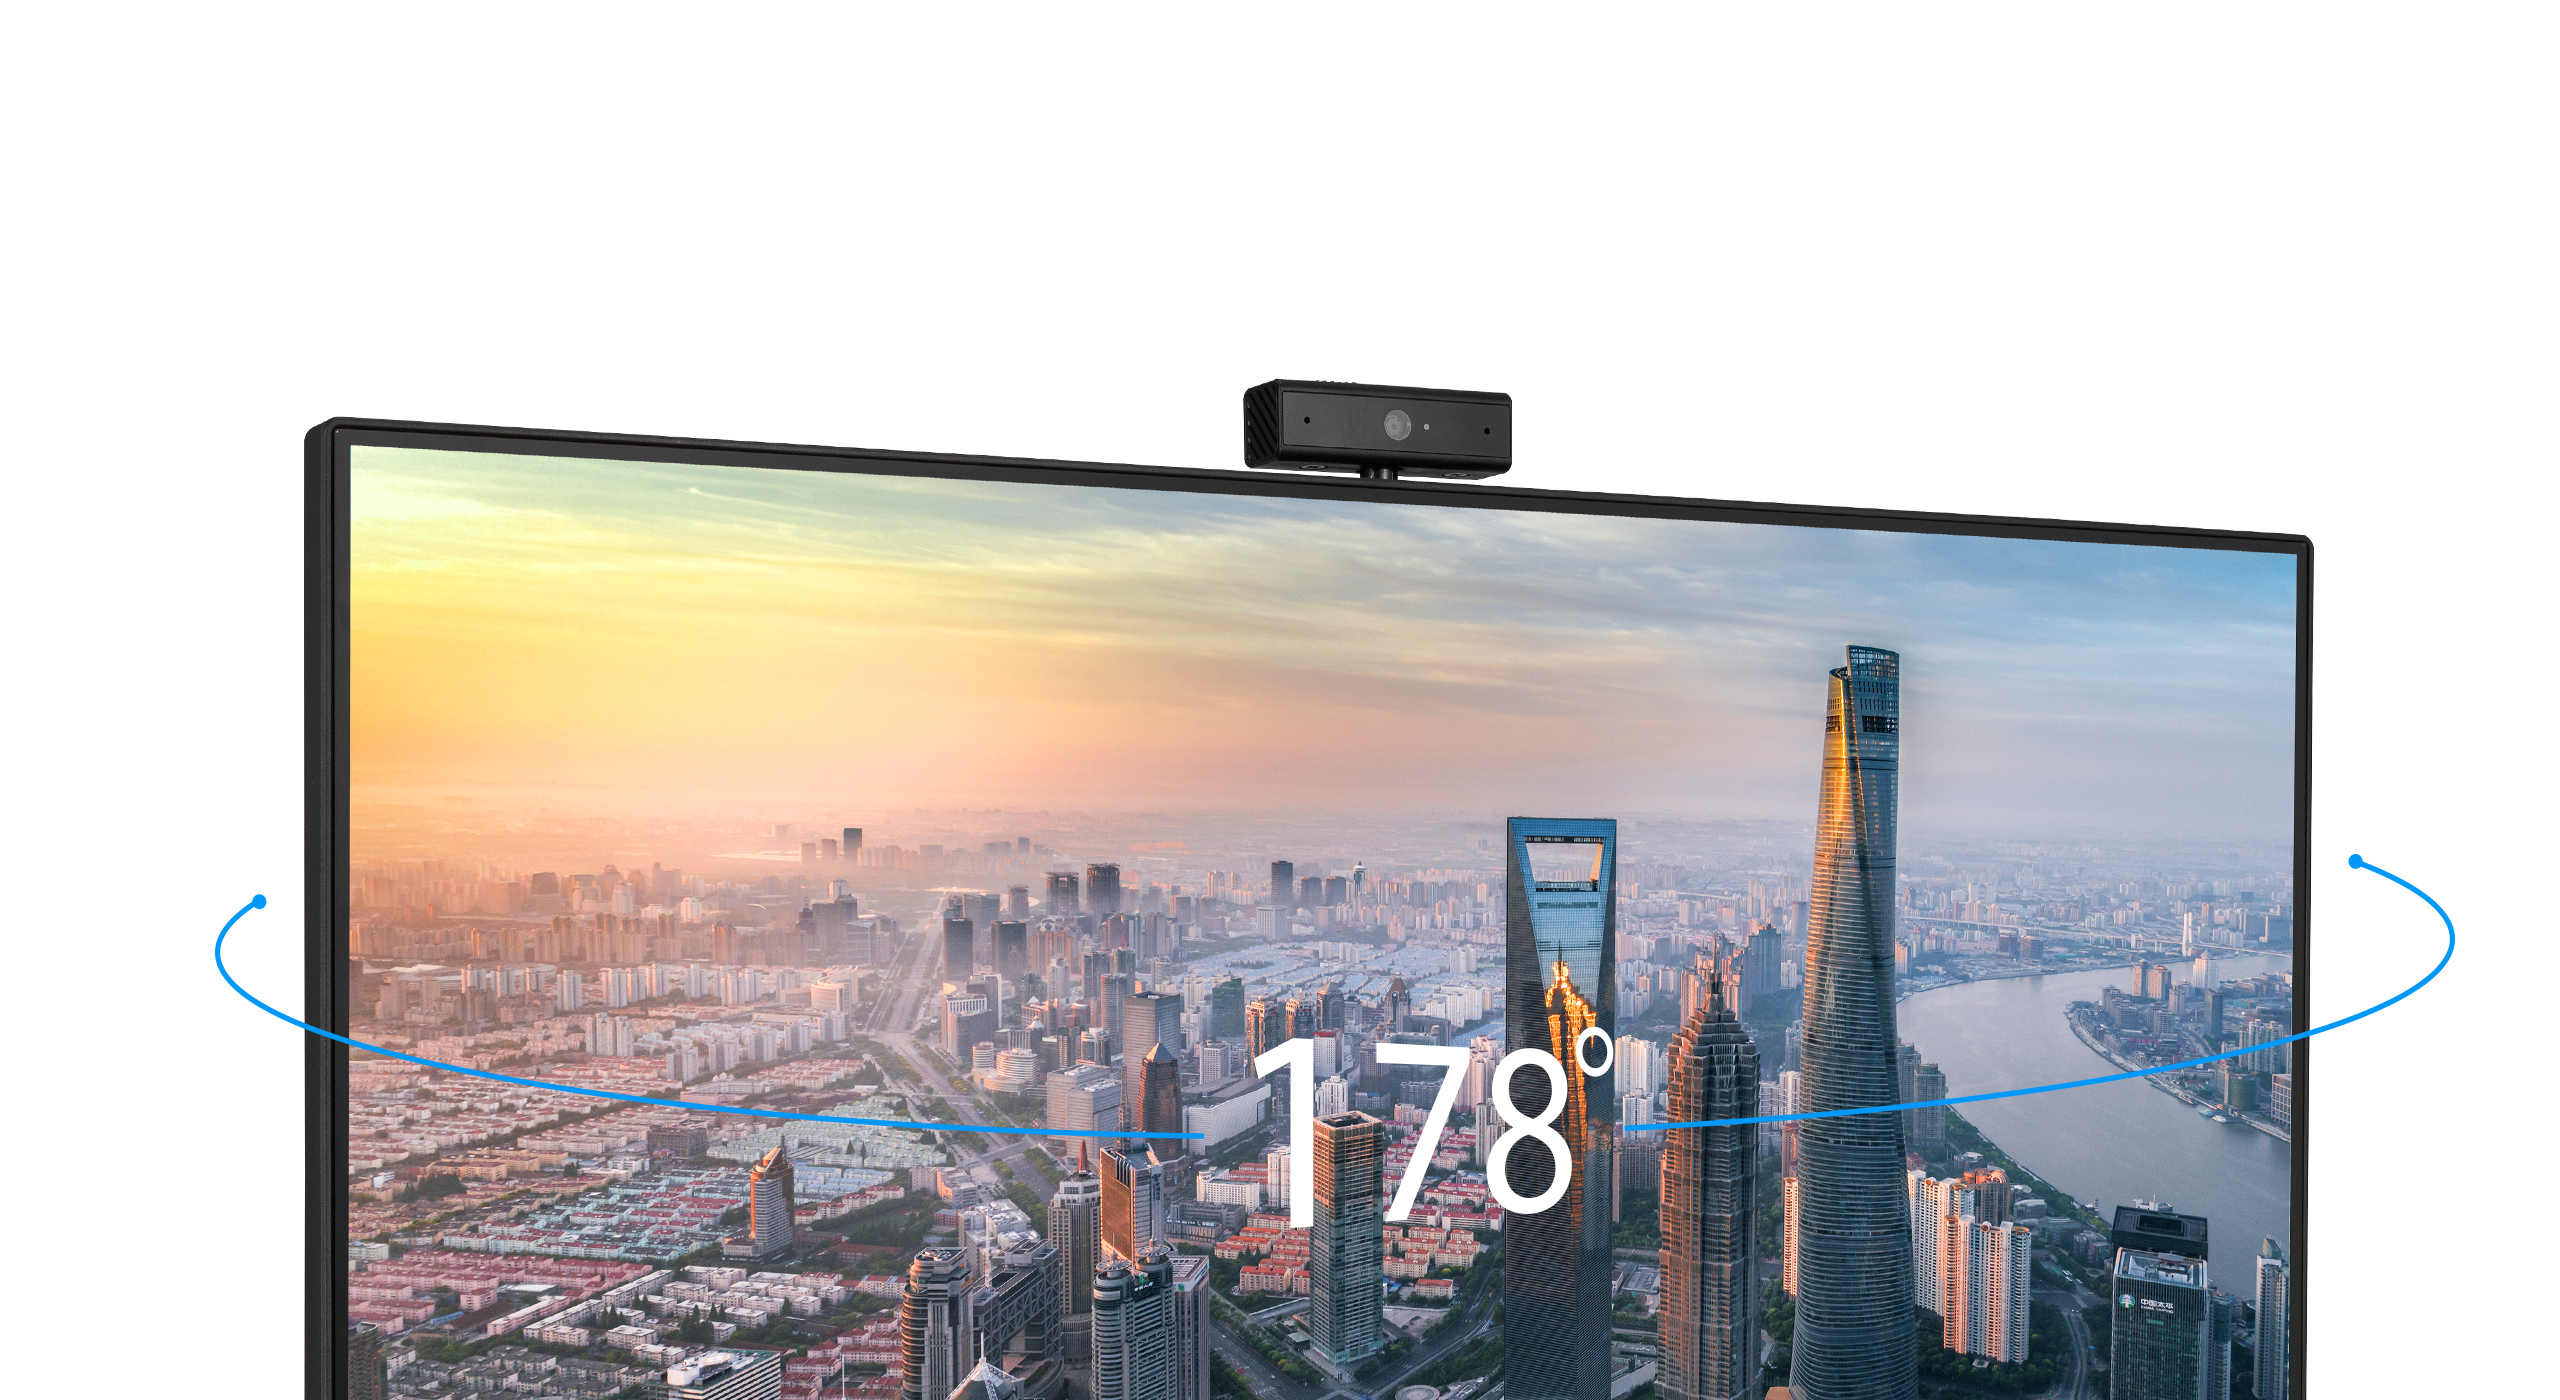 BE24EQSK offers Full HD resolution to deliver stunning clarity.